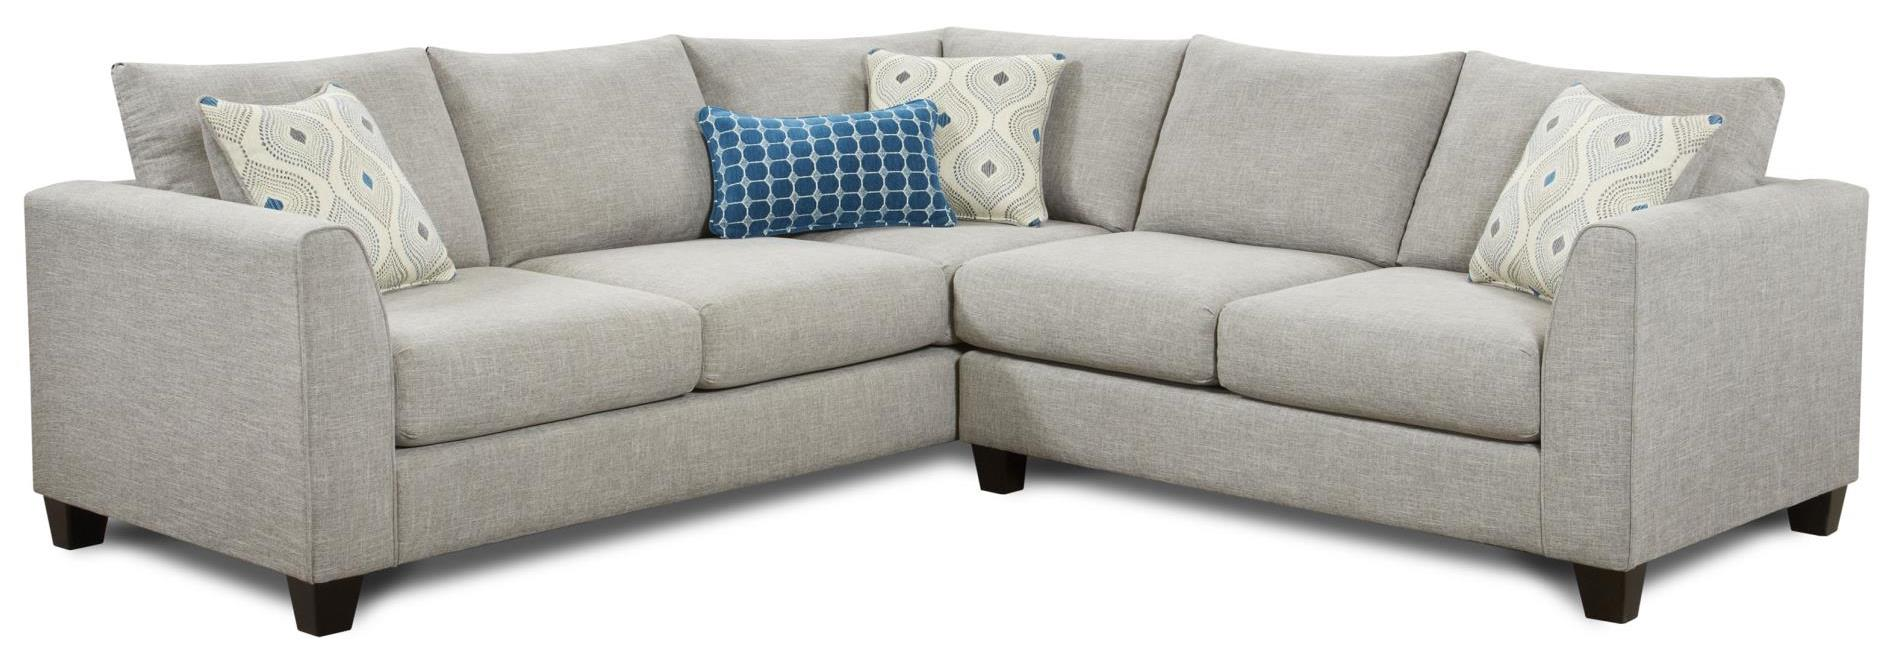 Paradigm 2-Piece Sectional at Ruby Gordon Home